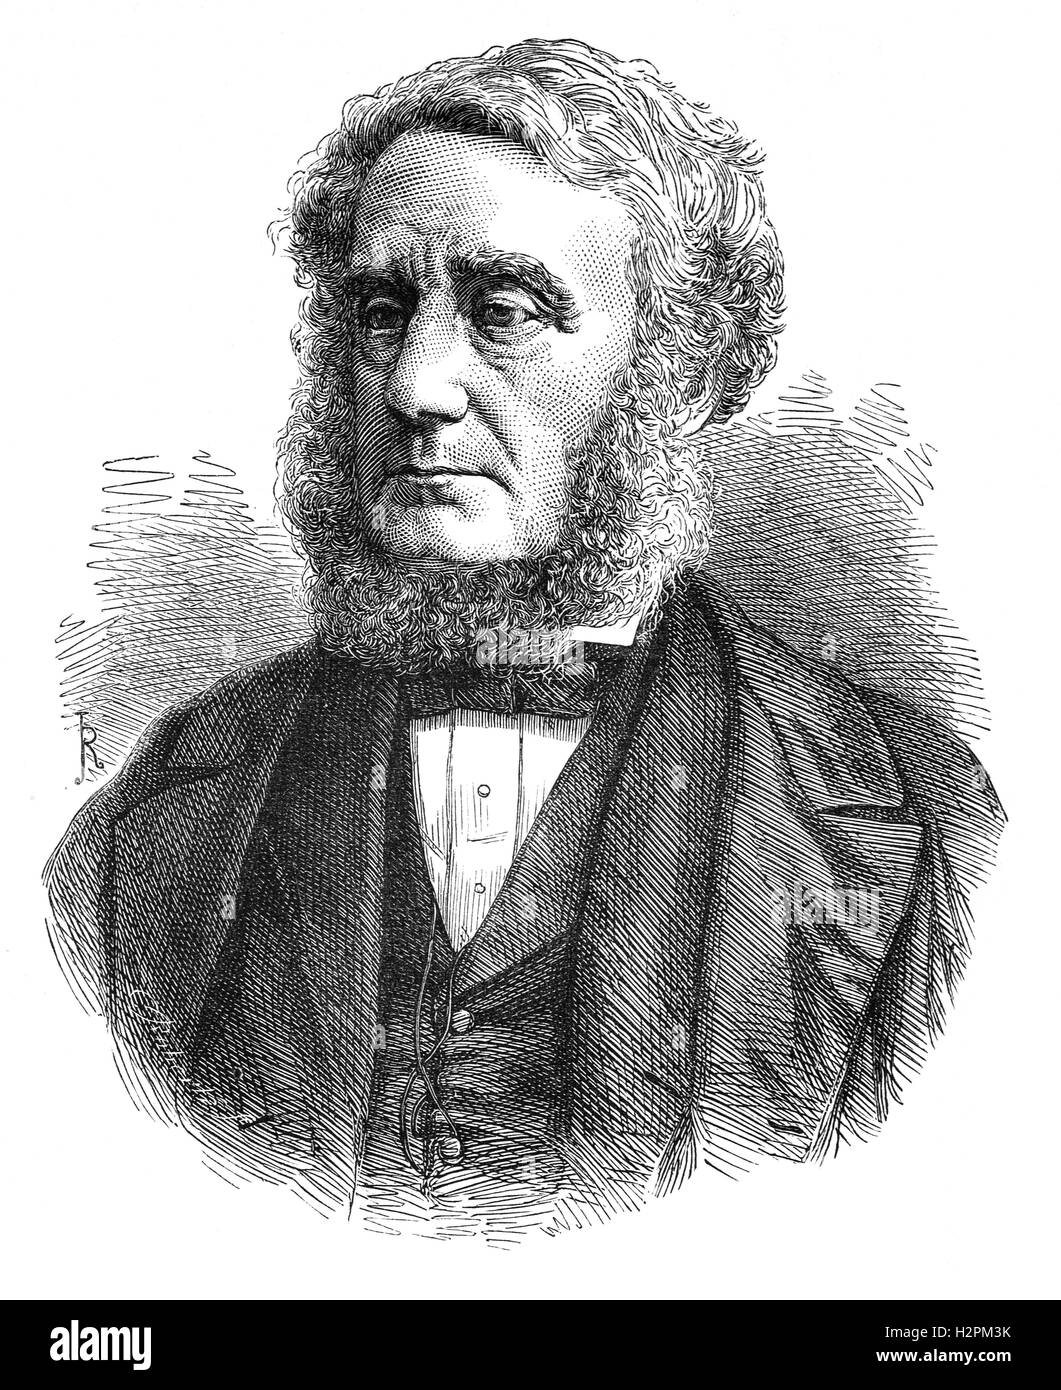 Edward Cardwell, 1st Viscount Cardwell, (1813 – 1886) was a prominent British politician in the Liberal party during - Stock Image